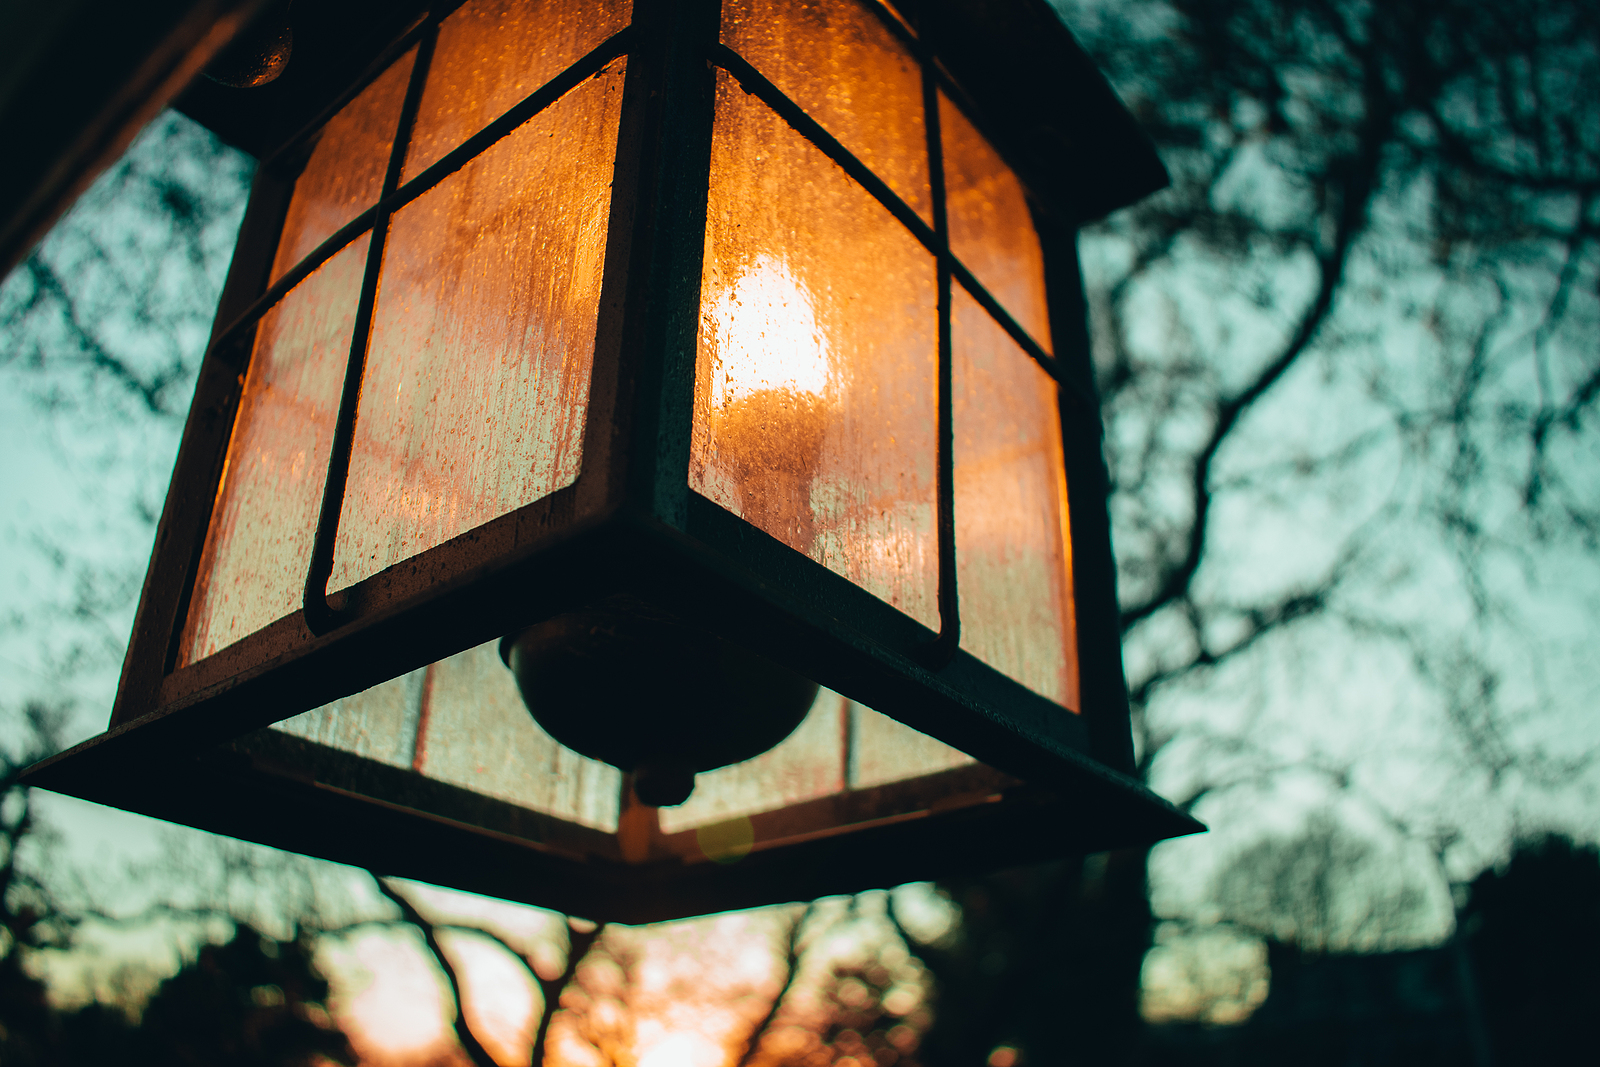 exterior-lighting-says-welcome-wilcox-electric-dc